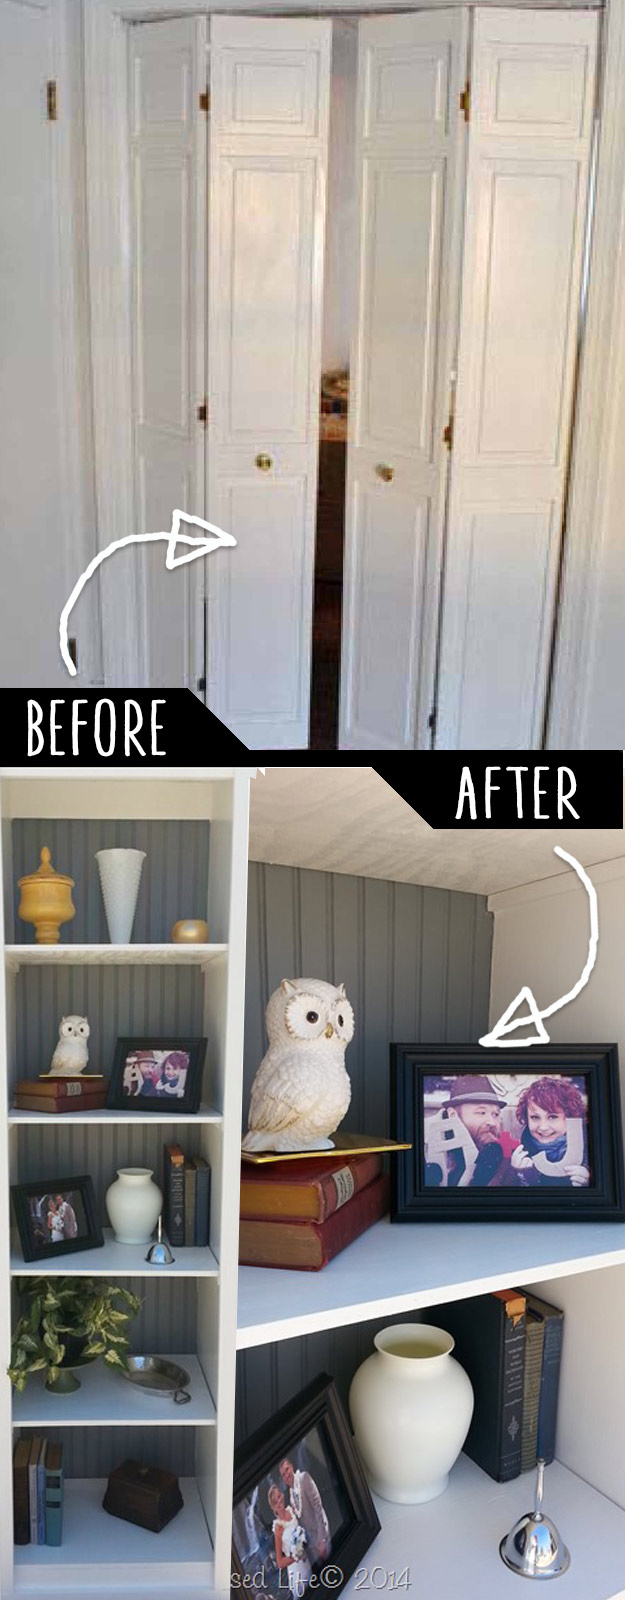 DIY Furniture Hacks | Bifold Bookshelf | Cool Ideas for Creative Do It Yourself Furniture | Cheap Home Decor Ideas for Bedroom, Bathroom, Living Room, Kitchen - http://diyjoy.com/diy-furniture-hacks